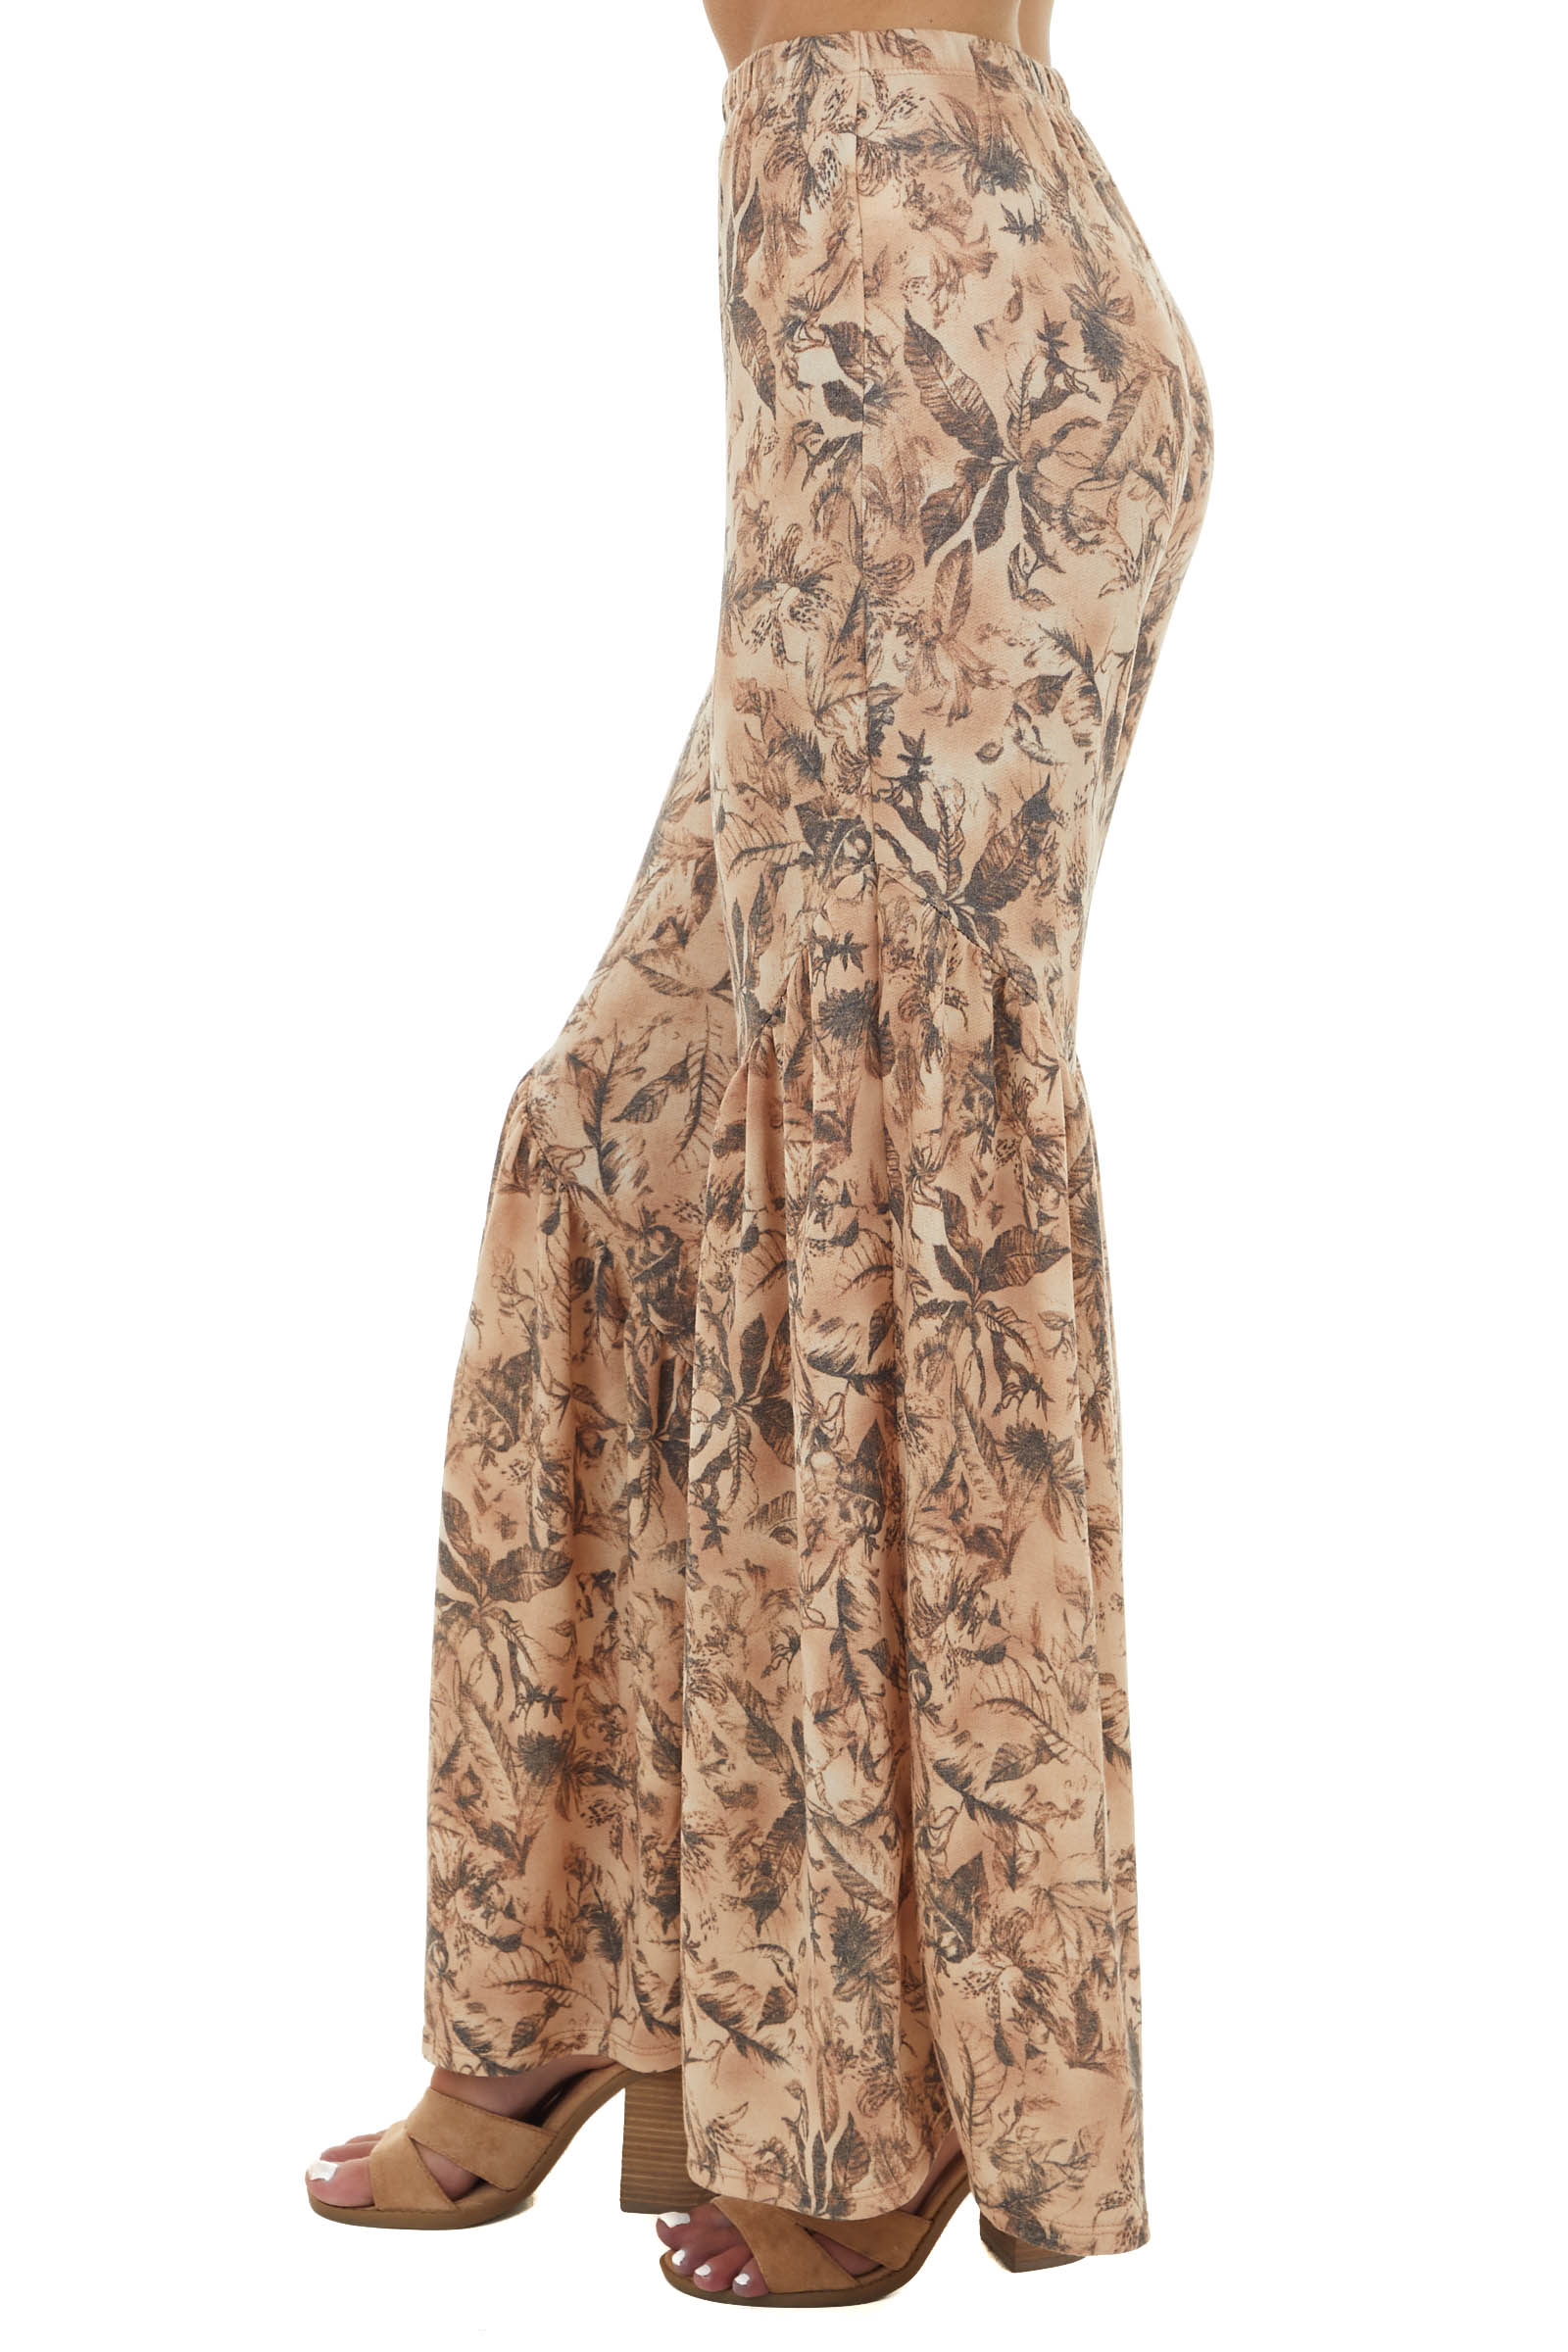 Faded Cognac and Charcoal Floral Stretchy Bell Bottom Pants